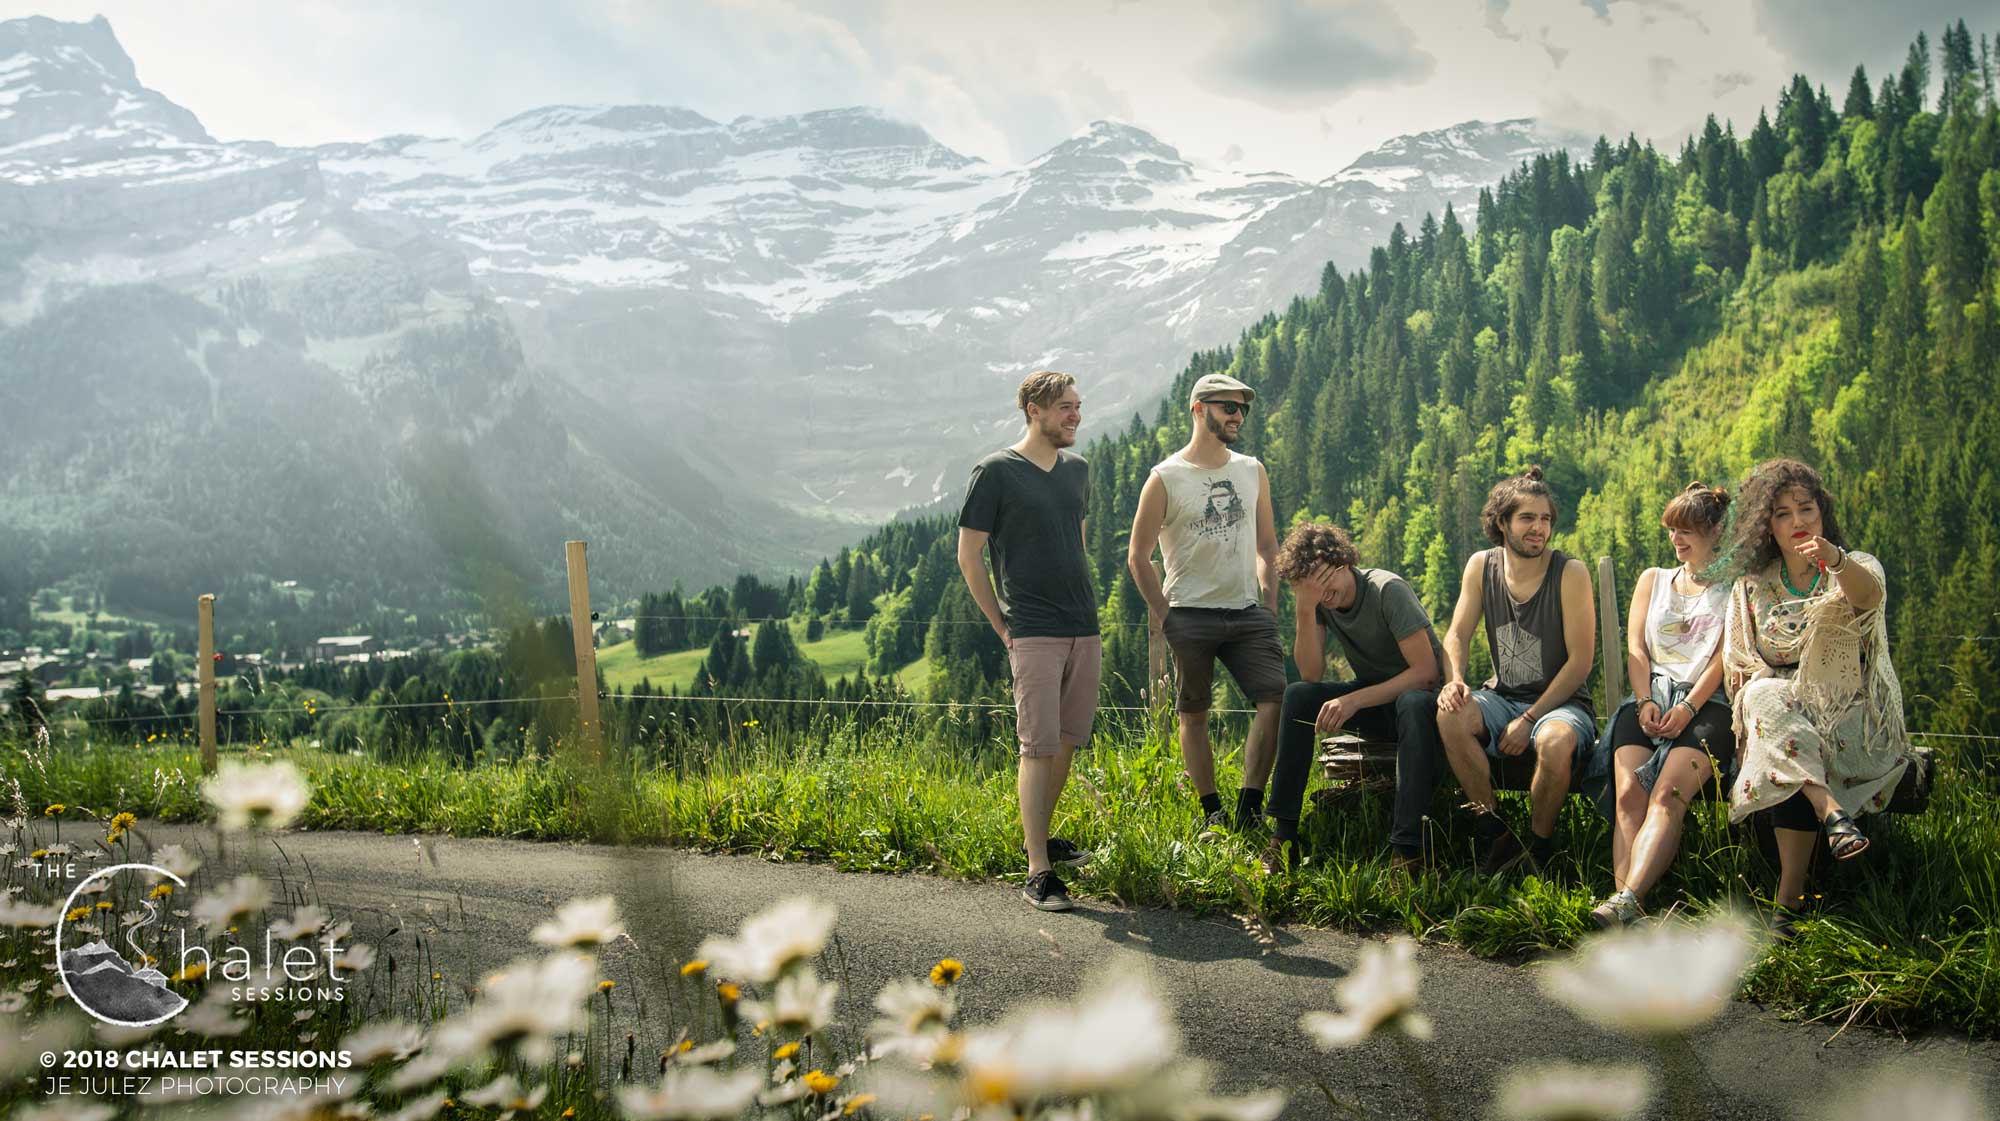 JEJULEZPHOTOGRAPHY_TheChaletSessions_AnnieG-11.jpg